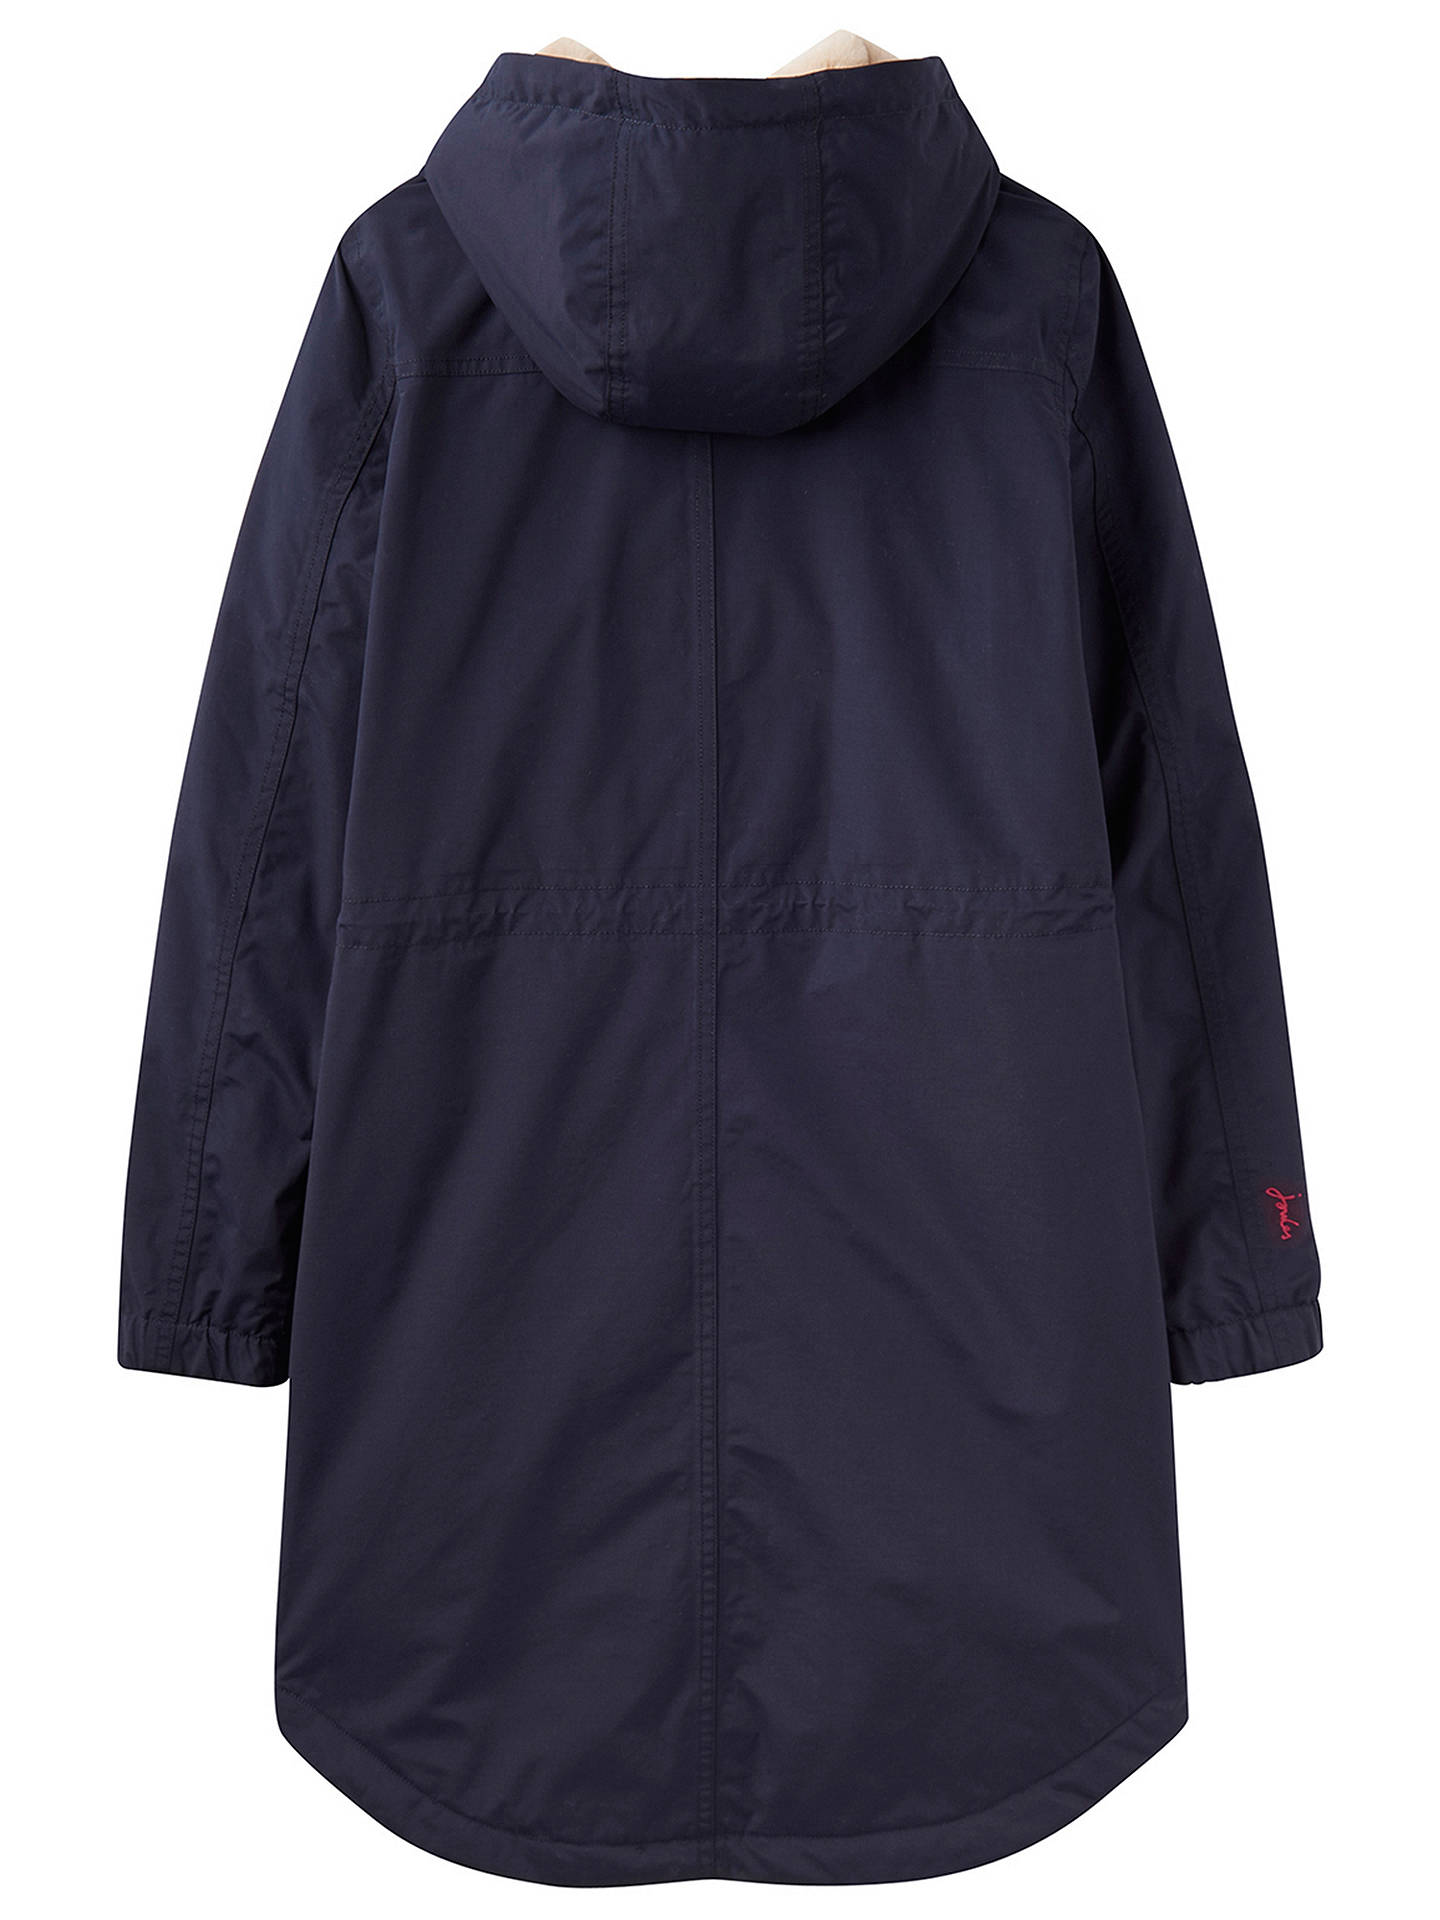 Buy Joules Stormbridge Waterproof Sherpa With Faux Fur Lining Parka, Navy, 8 Online at johnlewis.com